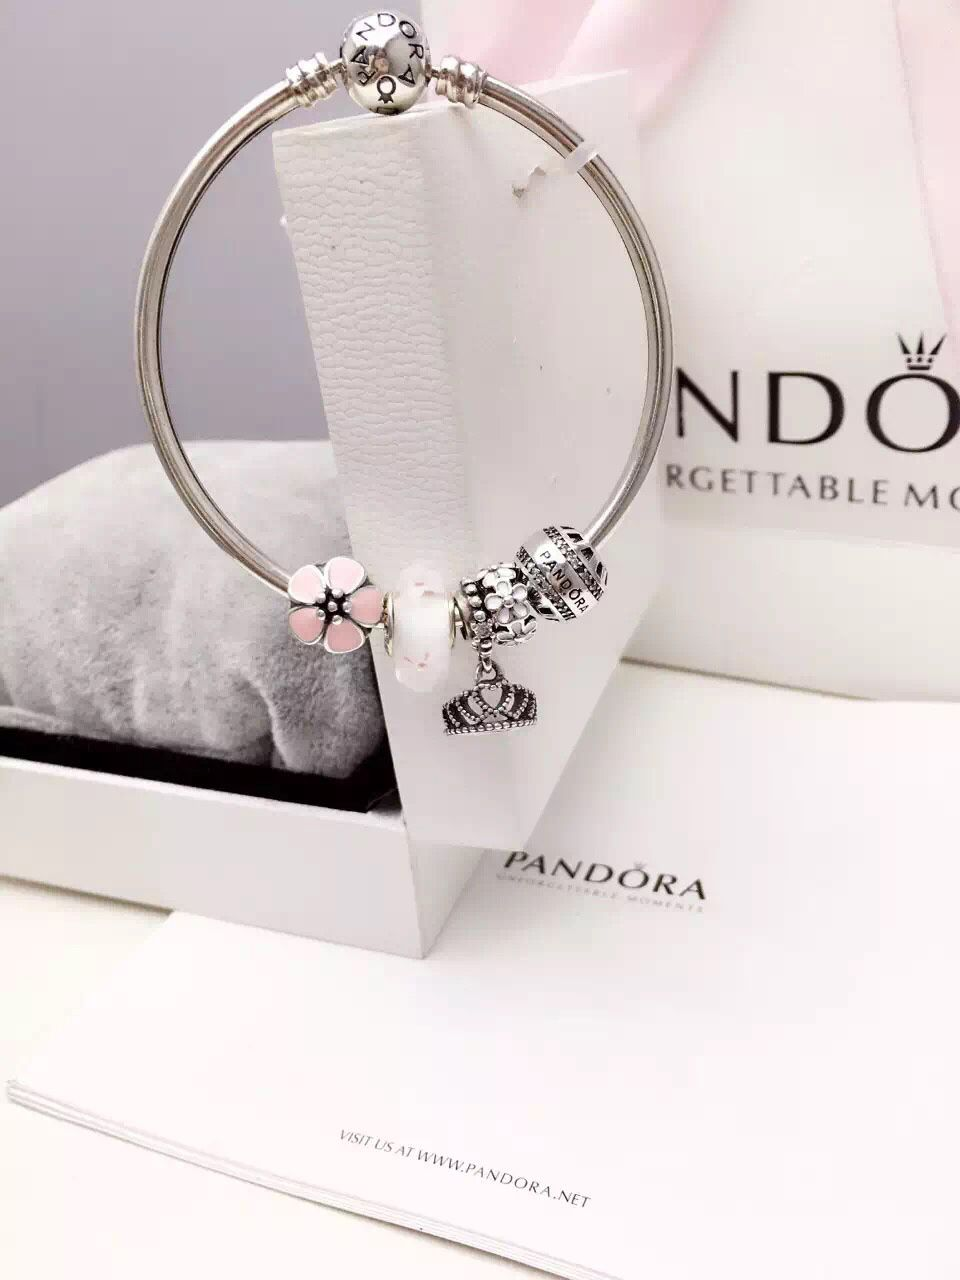 50 off 159 pandora bangle charm bracelet pink white. Black Bedroom Furniture Sets. Home Design Ideas